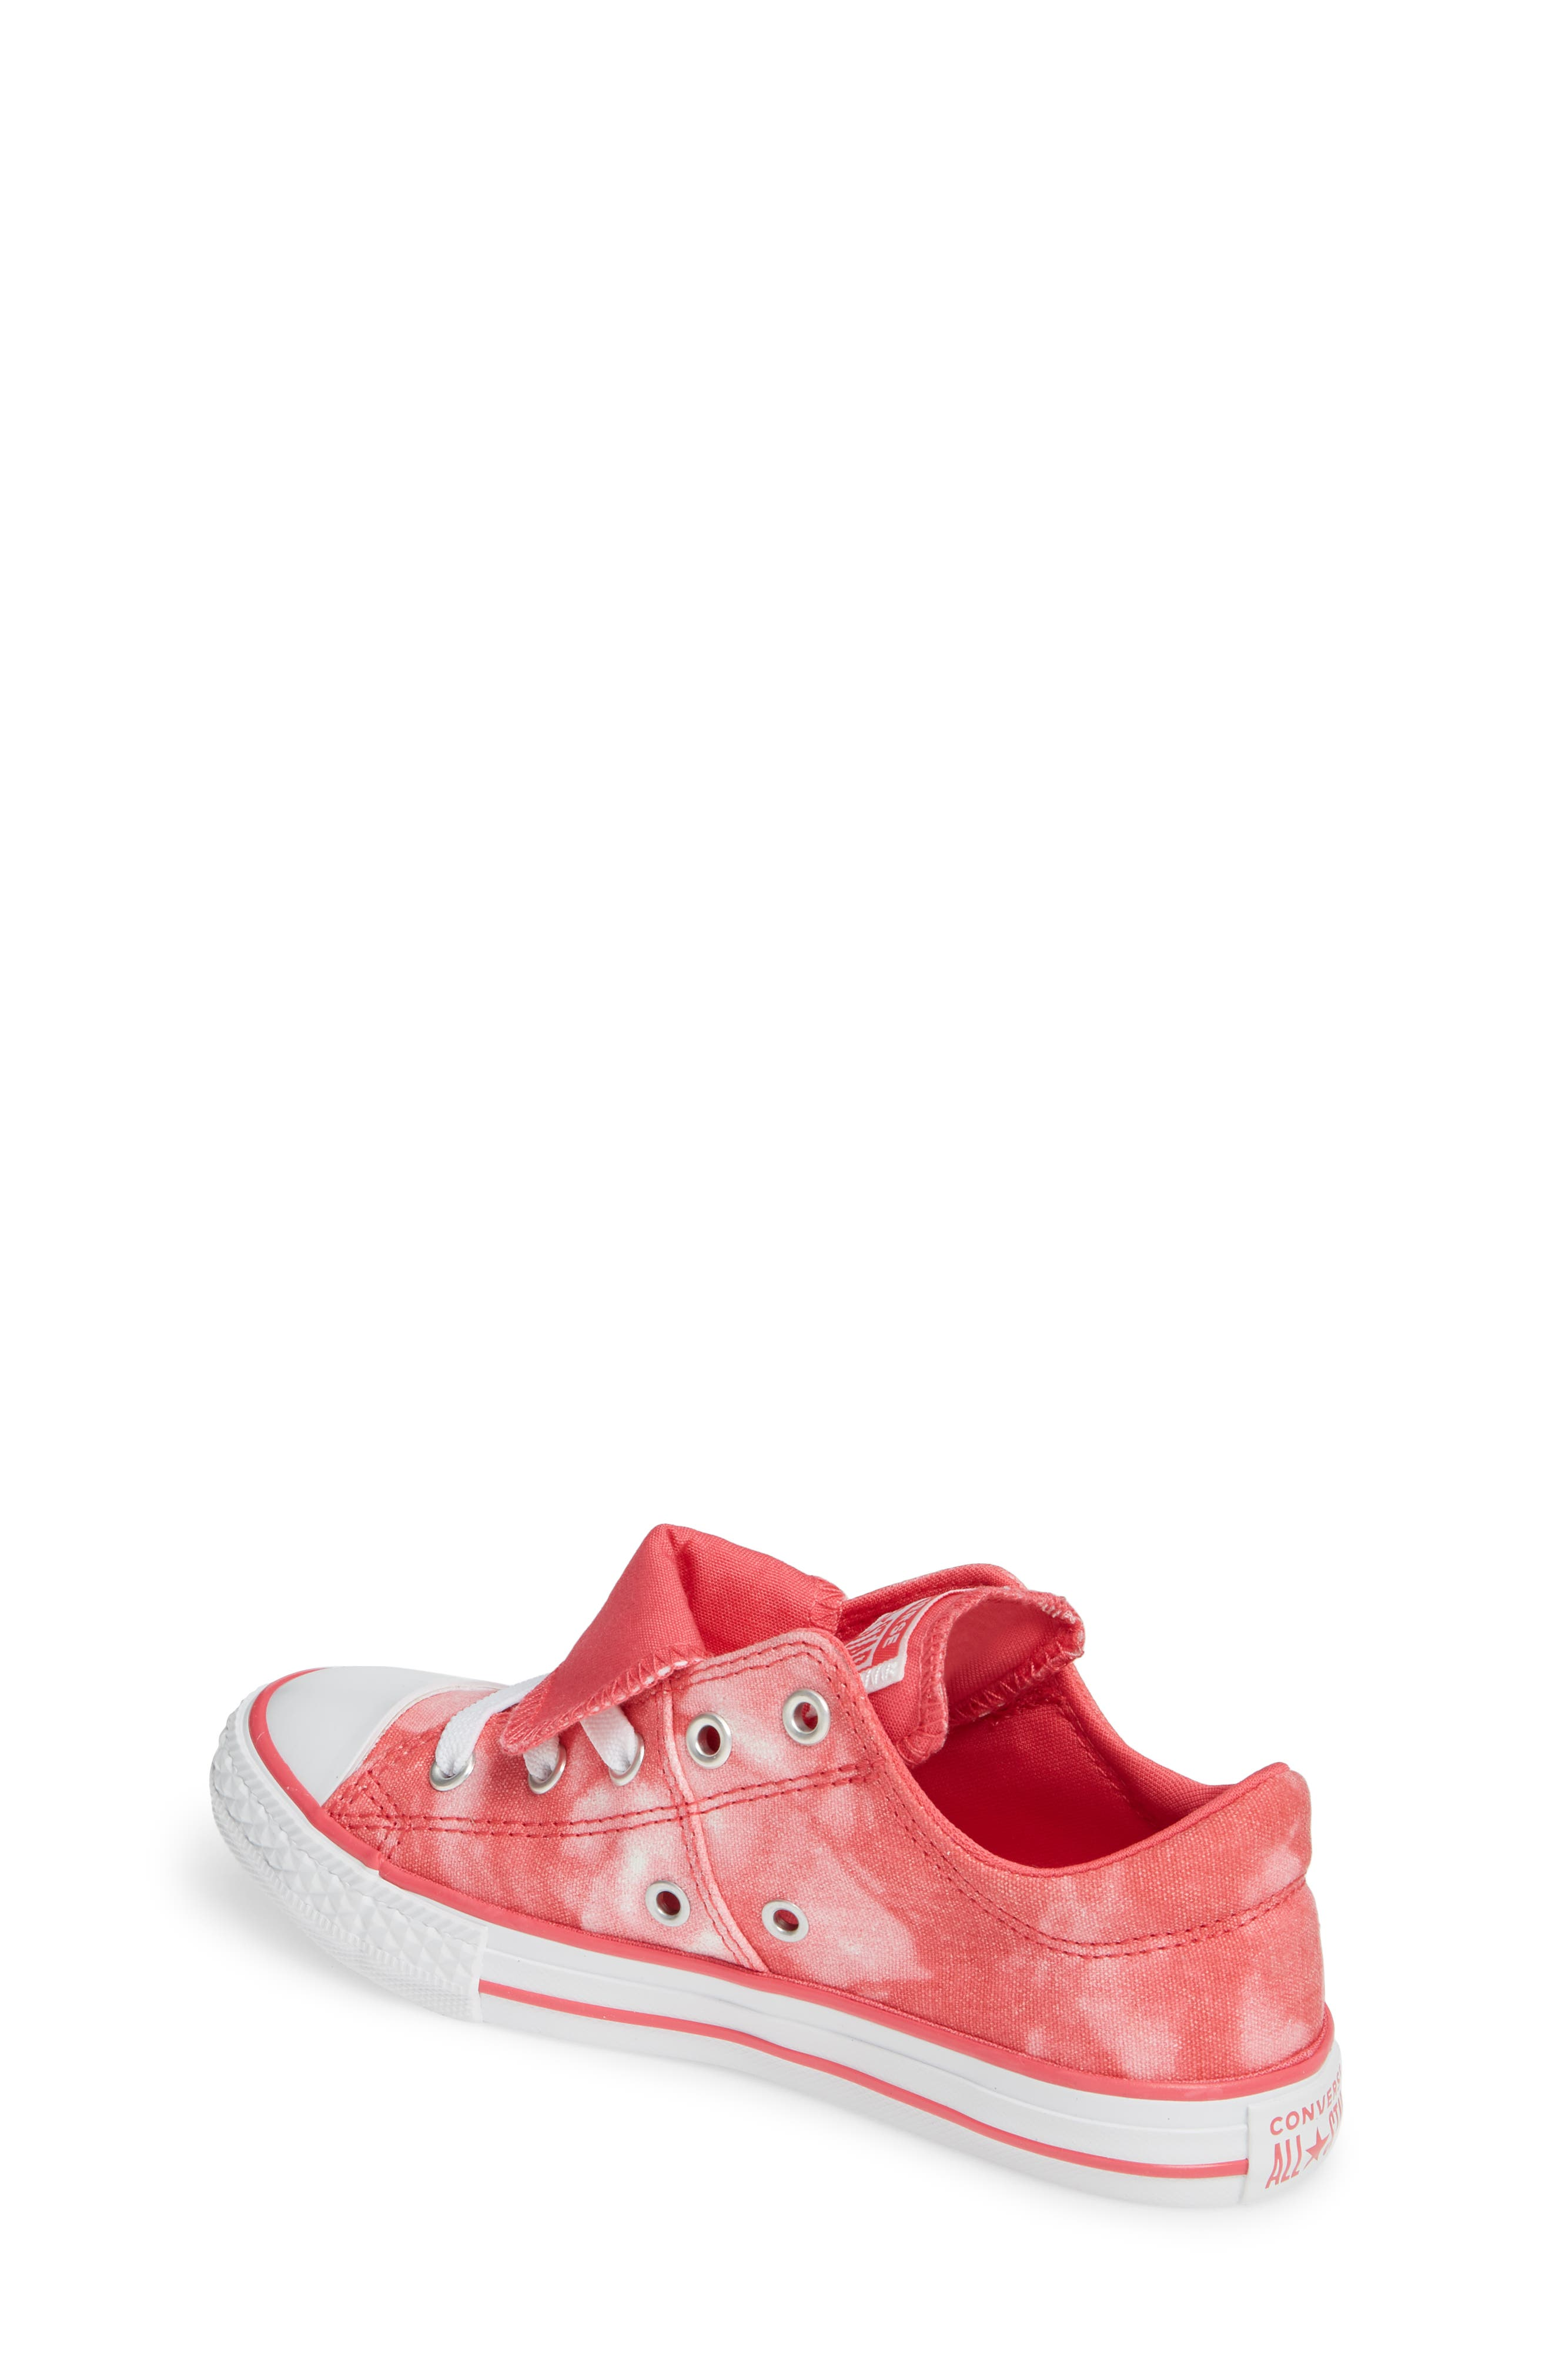 ,                             Chuck Taylor<sup>®</sup> All Star<sup>®</sup> Maddie Double Tongue Sneaker,                             Alternate thumbnail 38, color,                             662